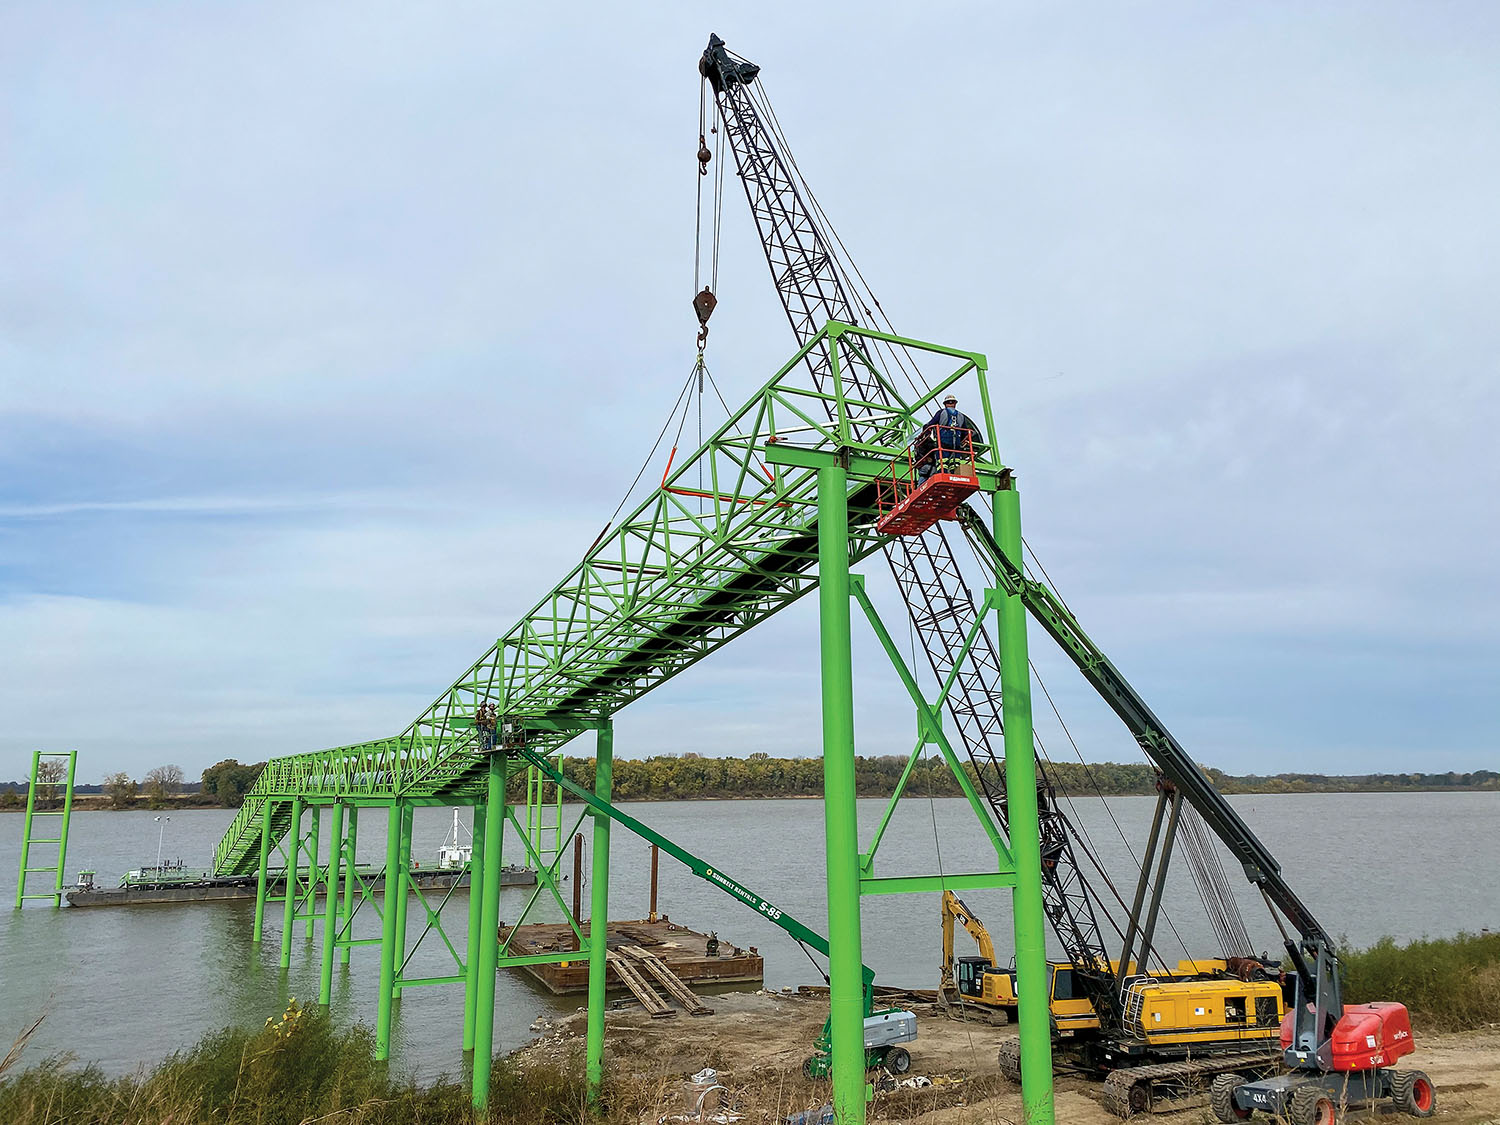 The bright green conveyor system stands out at Castlen Enterprises' new terminal along the Ohio River in Owensboro, Ky. (Photo courtesy of Castlen Enterprises)